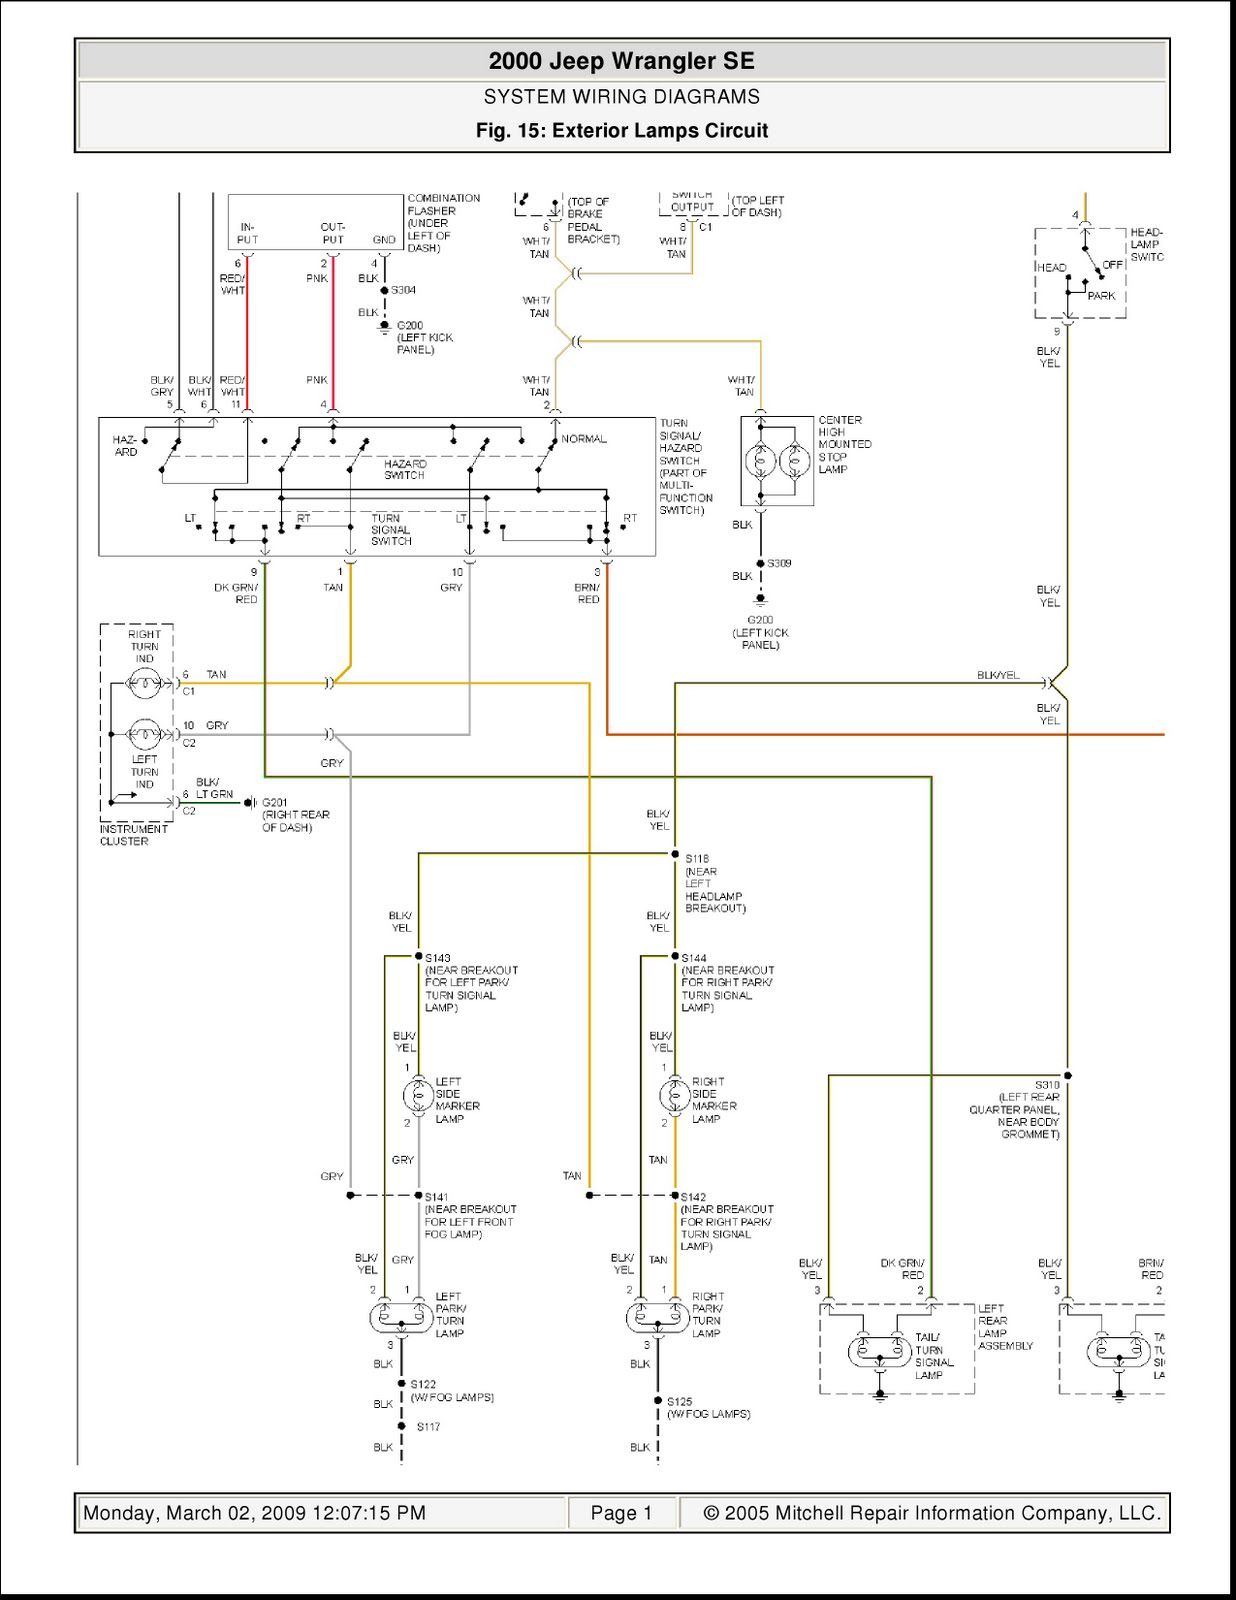 suzuki samurai alternator wiring diagram c6a2880 electronic ignition wiring diagram suzuki samurai wiring  electronic ignition wiring diagram